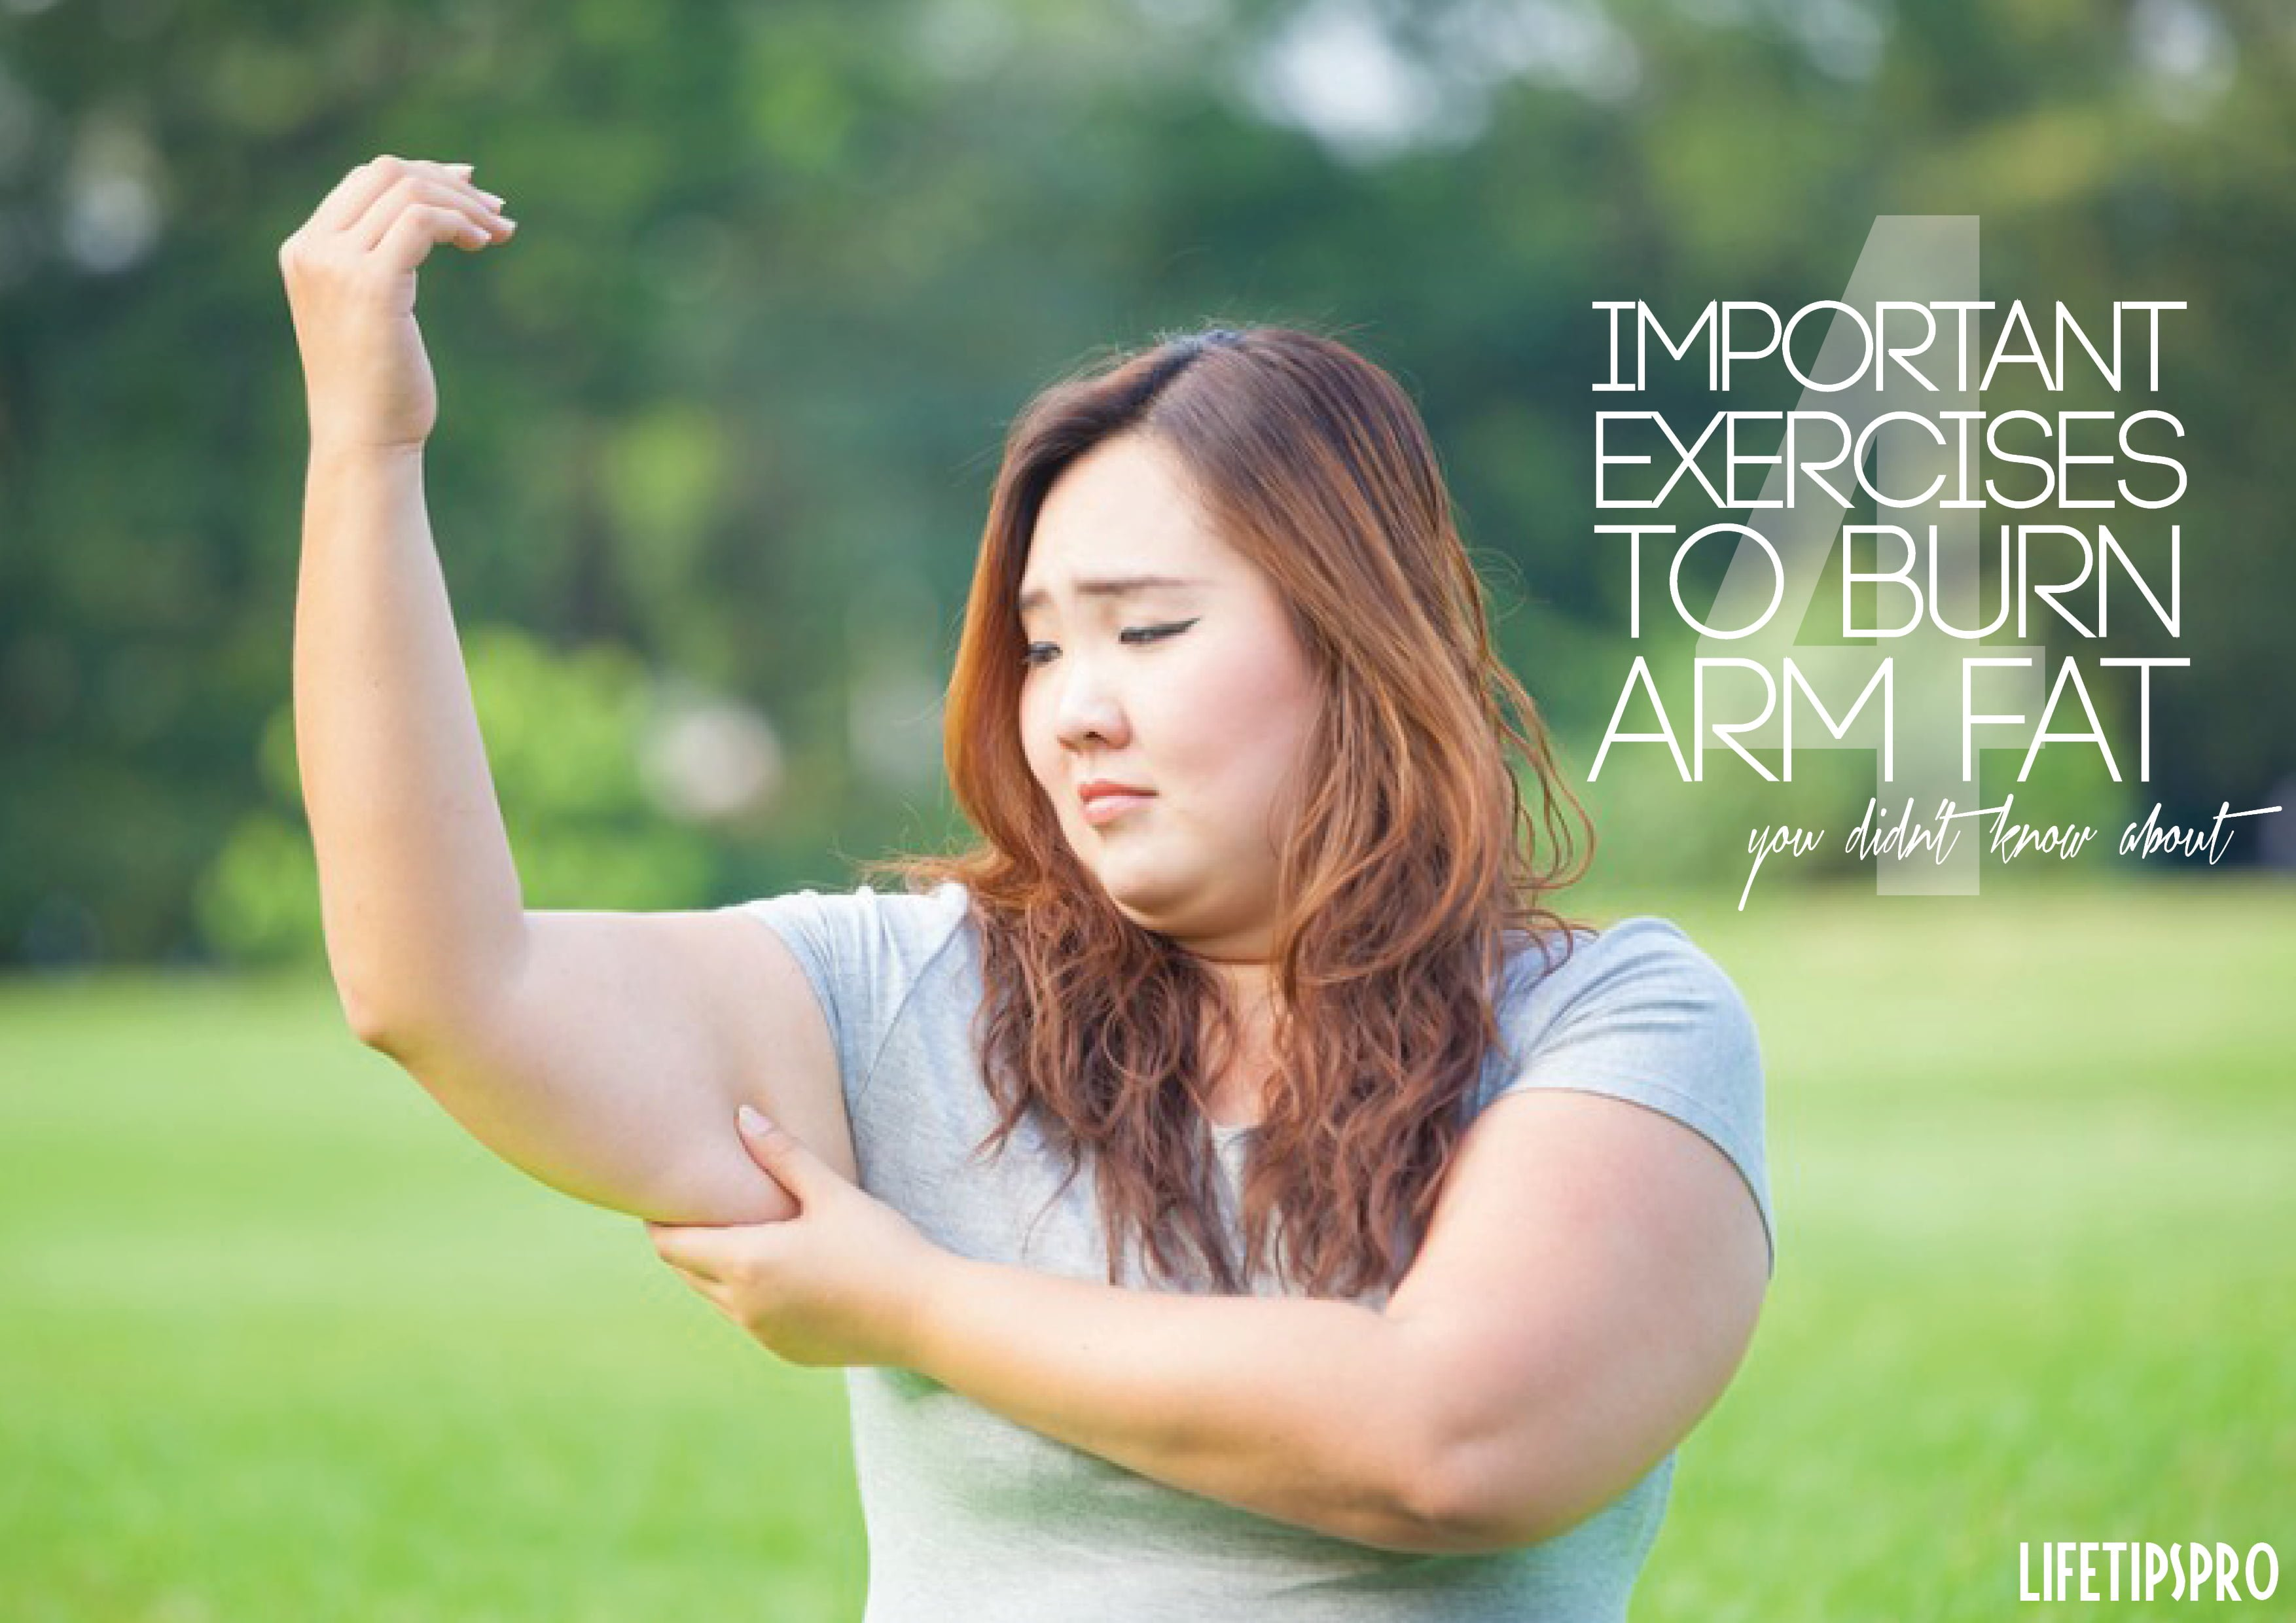 How to lose arm fat? 4 best exercises to get toned arms fast  - Life